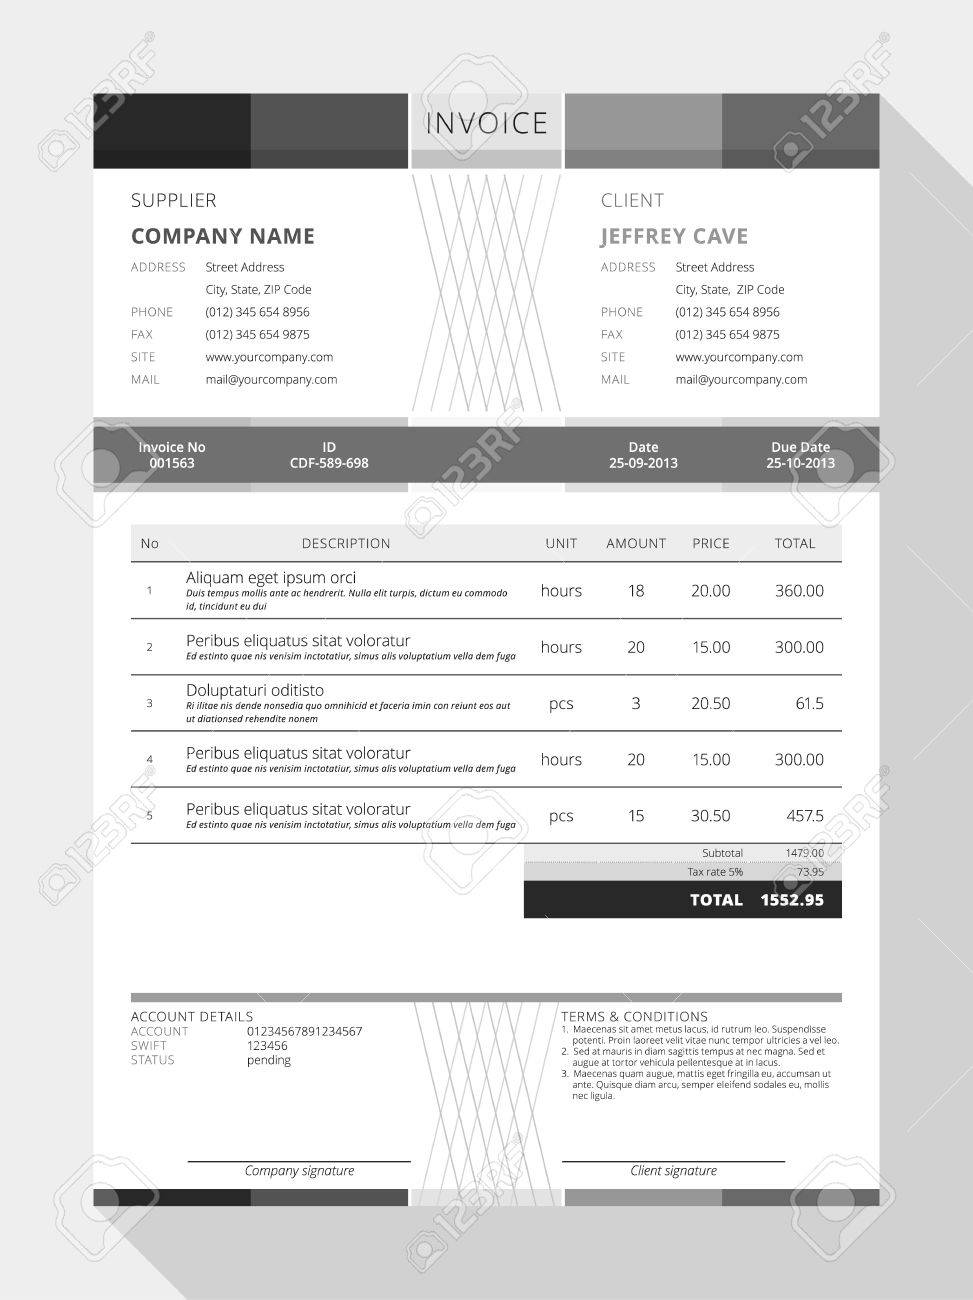 Angkajituus  Seductive Design An Invoice  Professional Graphic Design Invoice  With Exciting Vector Customizable Invoice Form Template Design Vector   Design An Invoice With Endearing Typical Invoice Layout Also Invoice Discounting Explained In Addition Online Invoice Format And Transport Invoice As Well As Match Invoice Additionally Sample Proforma Invoice Doc From Happytomco With Angkajituus  Exciting Design An Invoice  Professional Graphic Design Invoice  With Endearing Vector Customizable Invoice Form Template Design Vector   Design An Invoice And Seductive Typical Invoice Layout Also Invoice Discounting Explained In Addition Online Invoice Format From Happytomco